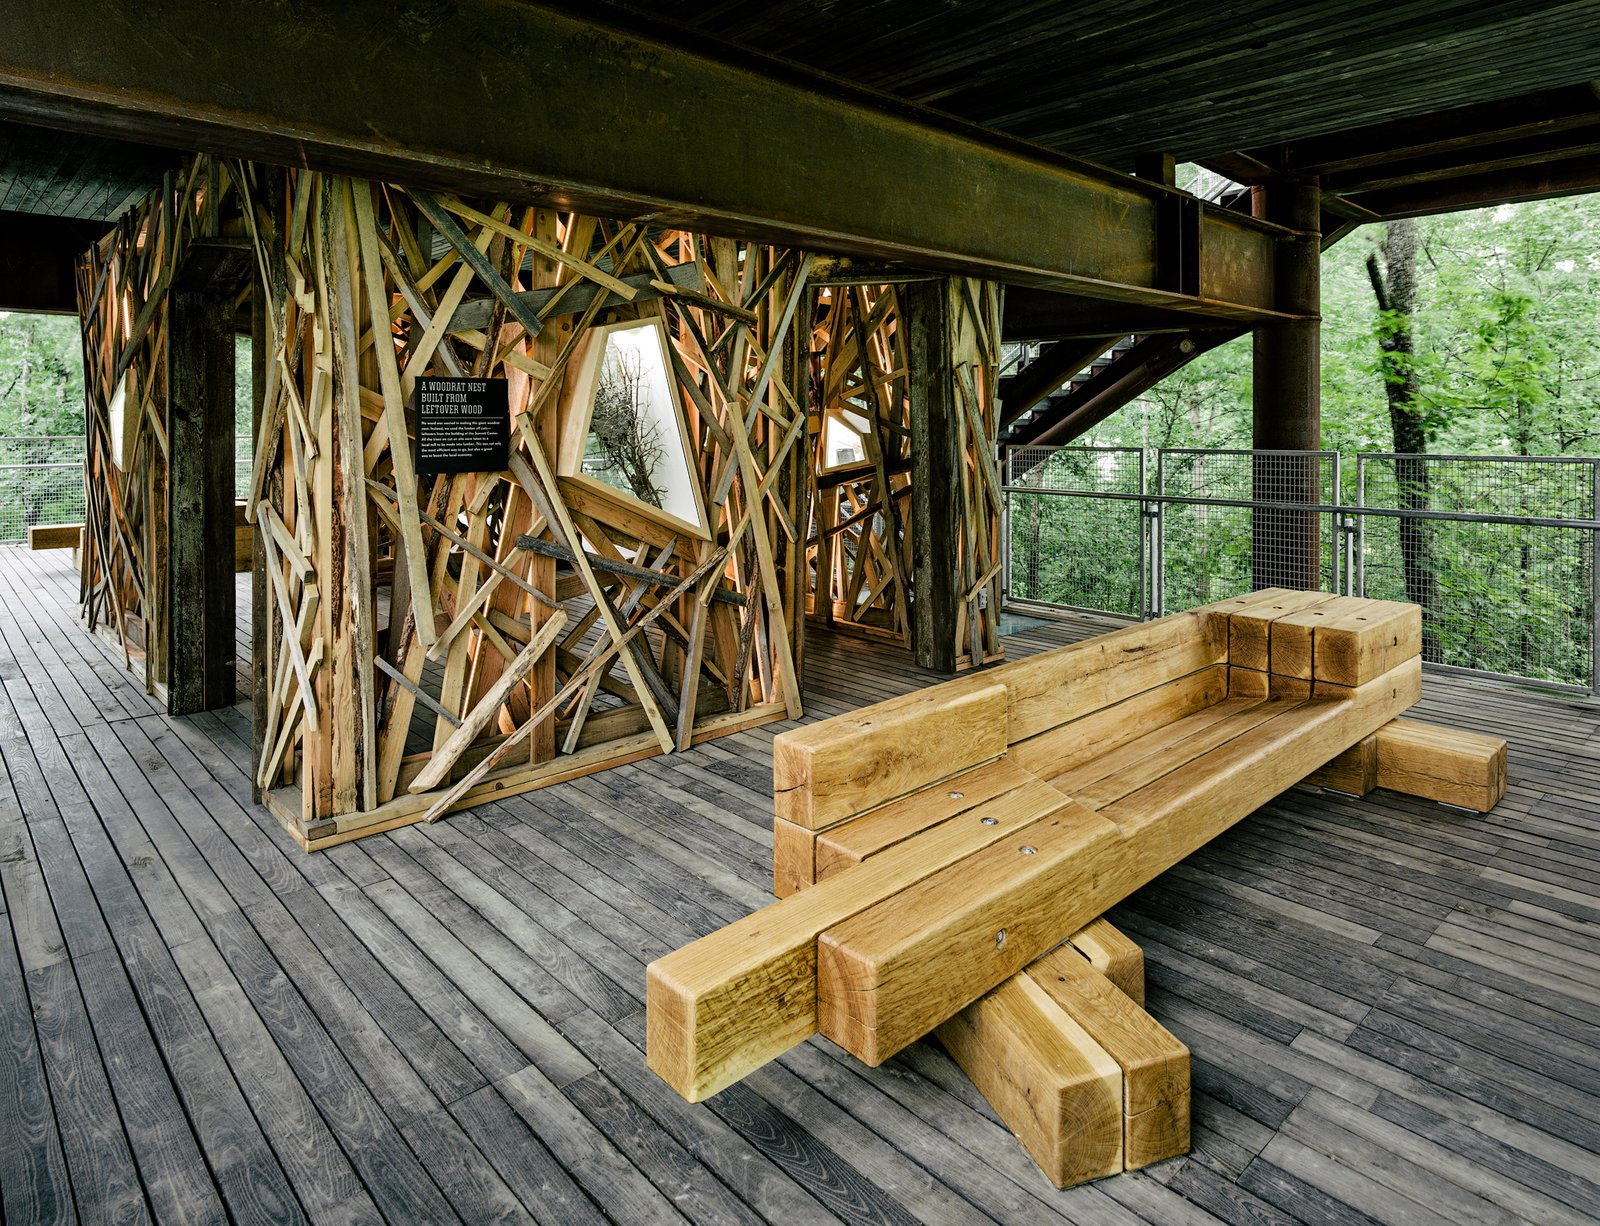 A bench offers a place to rest and take in the surrounding tree canopy. Creating opportunities for contemplation is another key element of the structure's design.  Sustainability Treehouse by Diana Budds